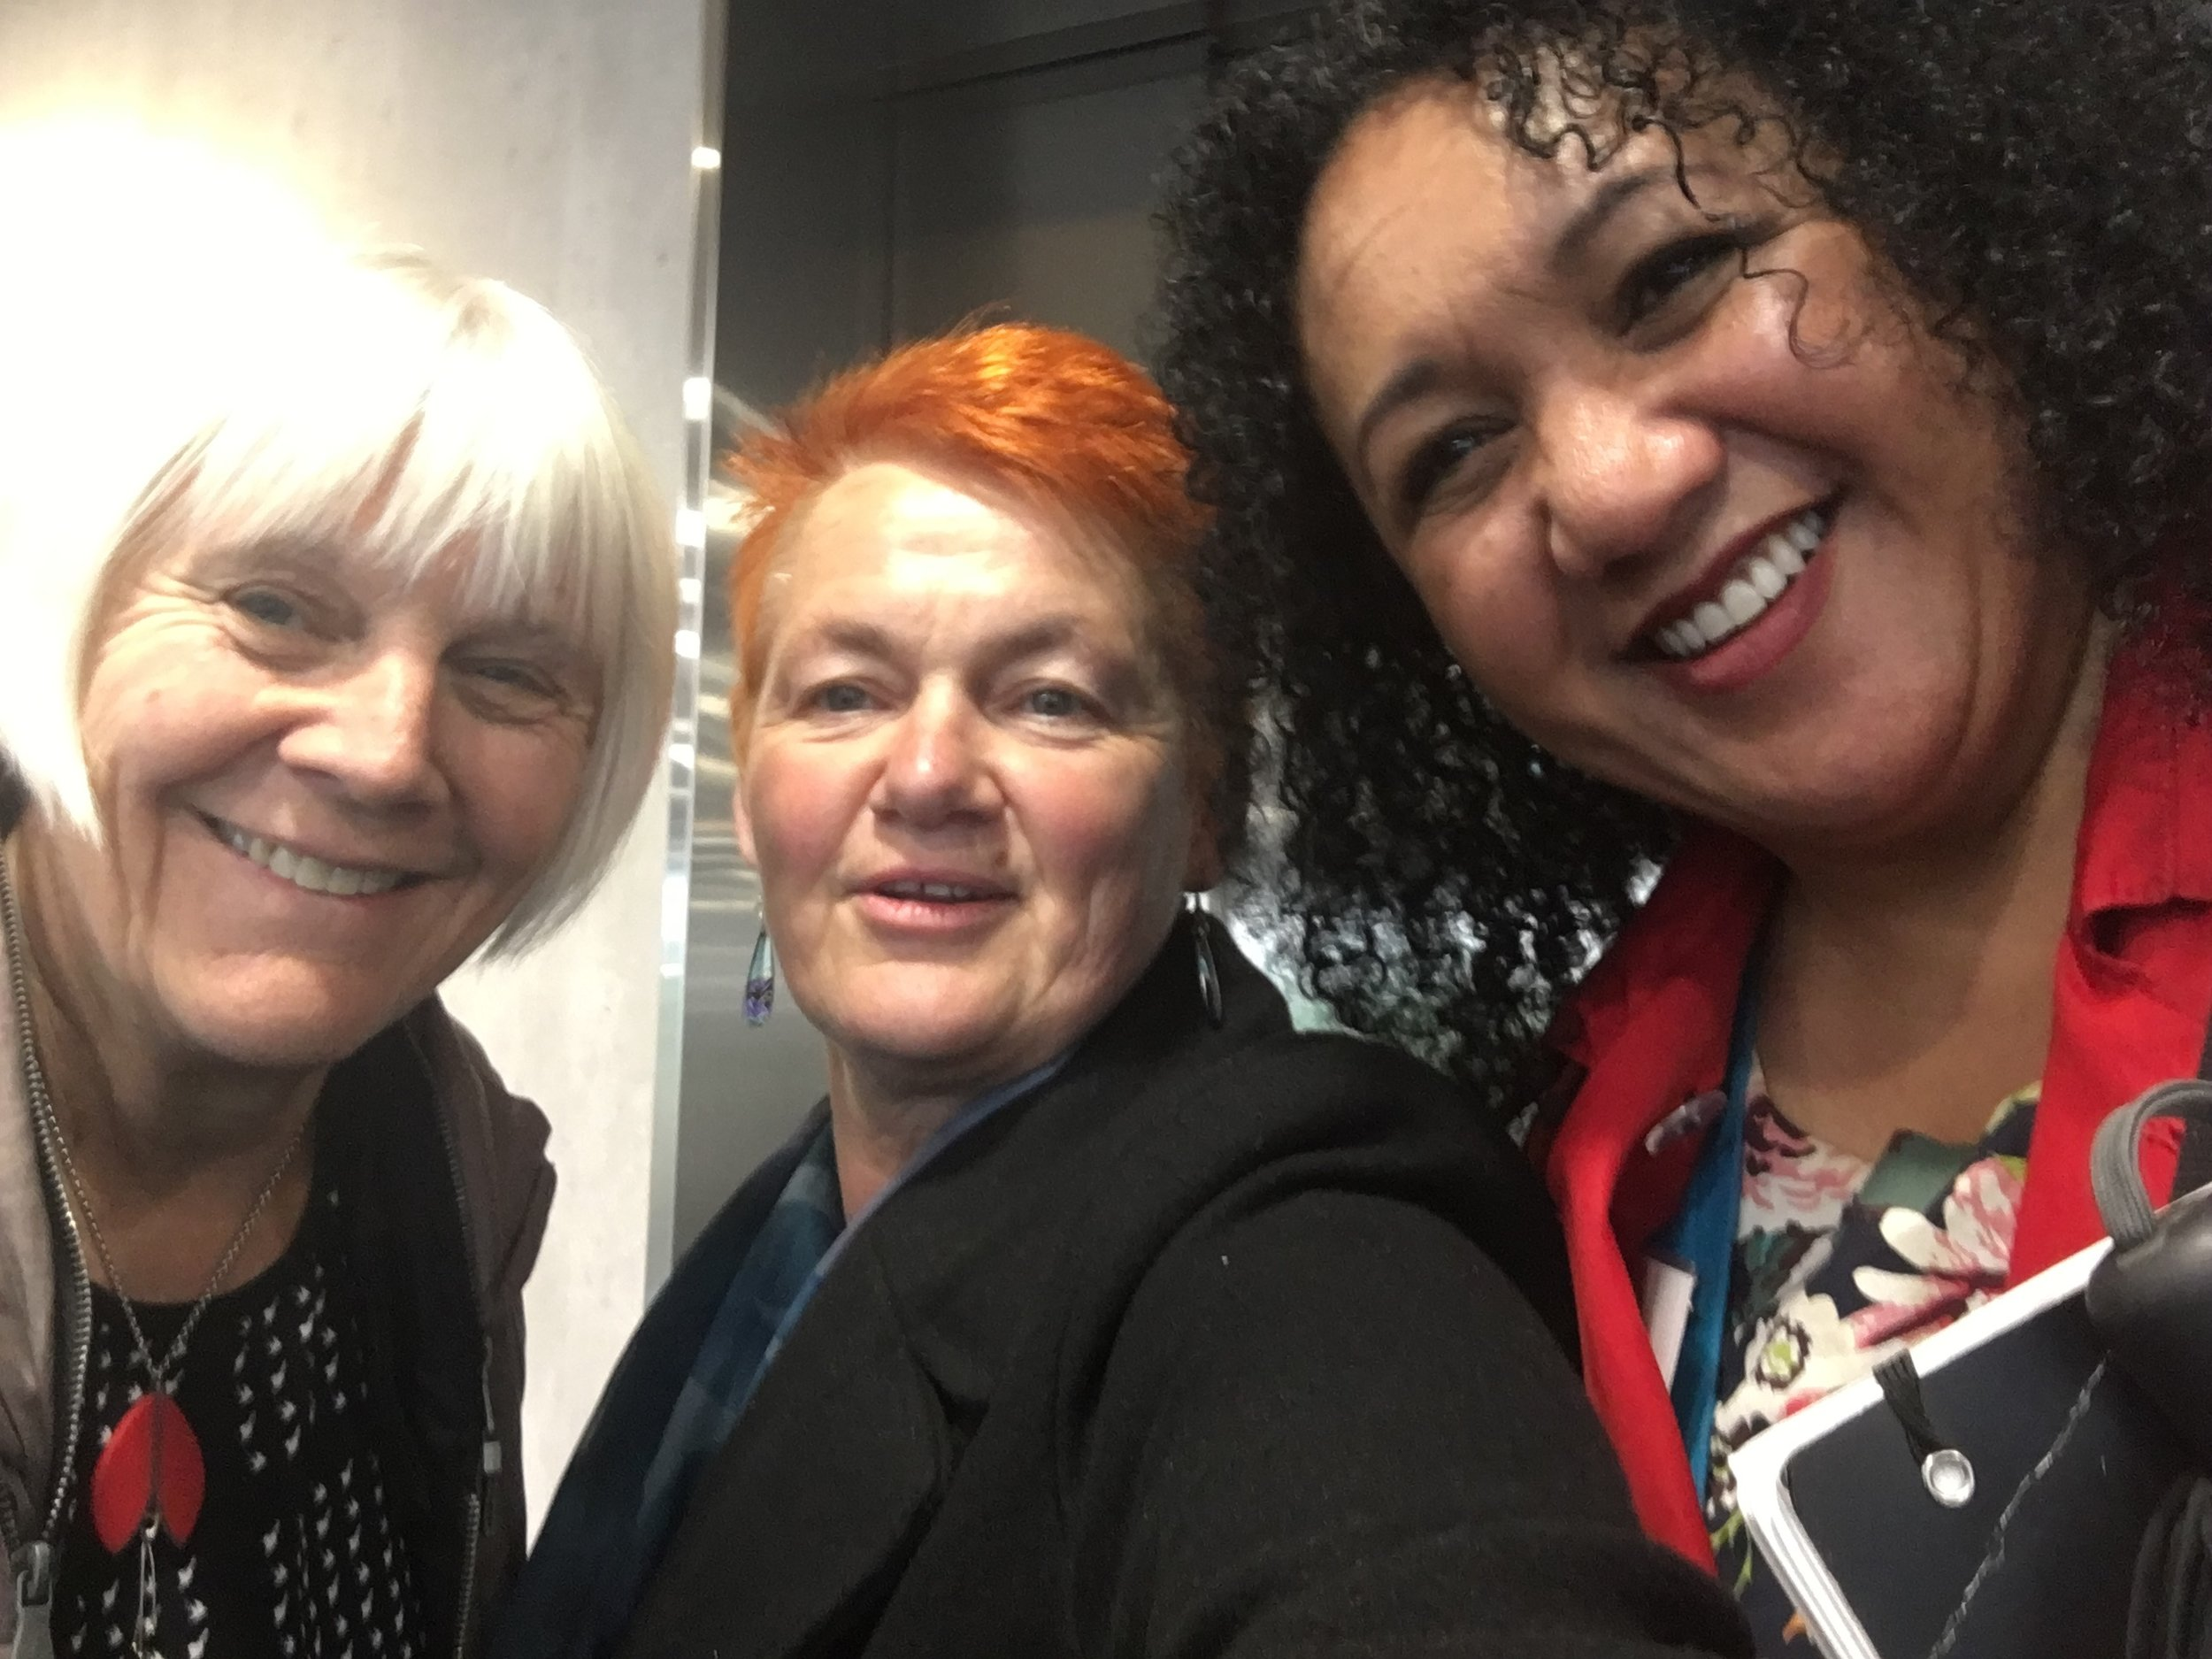 With Gill Coe and Maria Pasene